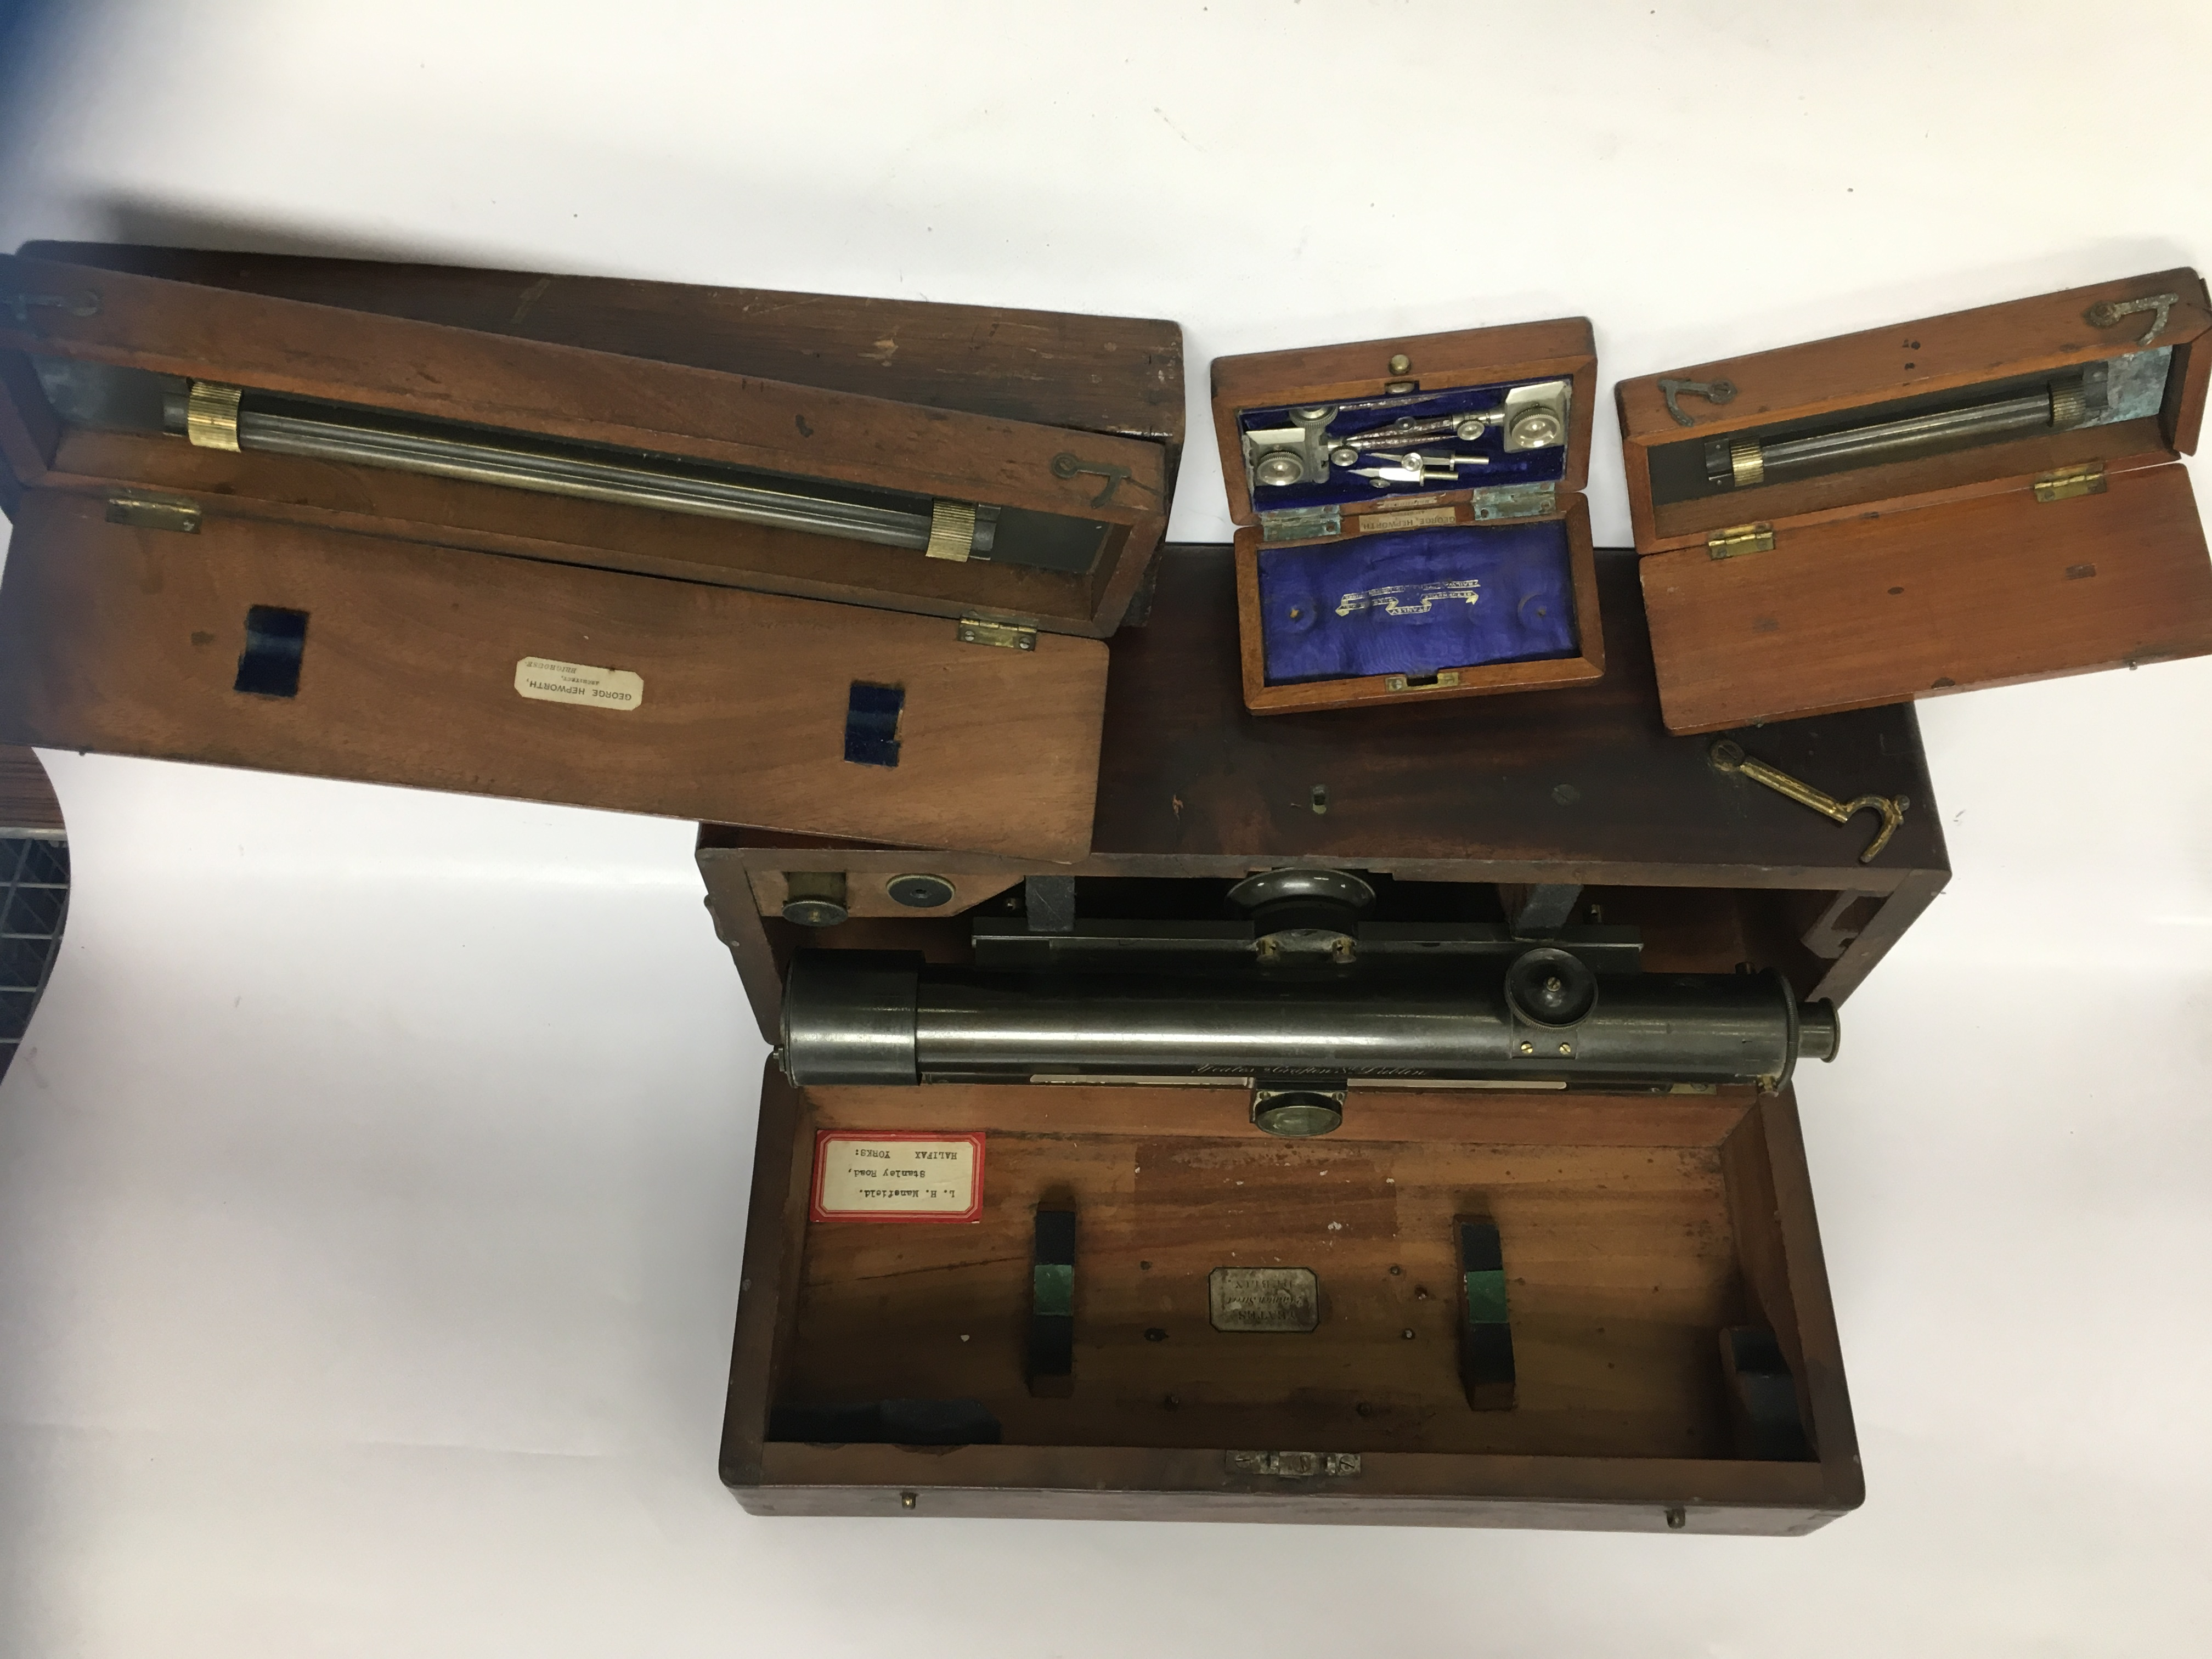 Lot 60 - CASED YEATES OF DUBLIN THEODOLITE BOXED SET OF DRAFTSMAN'S RULERS AND 2 BOXED BRASS DRAFTSMANS